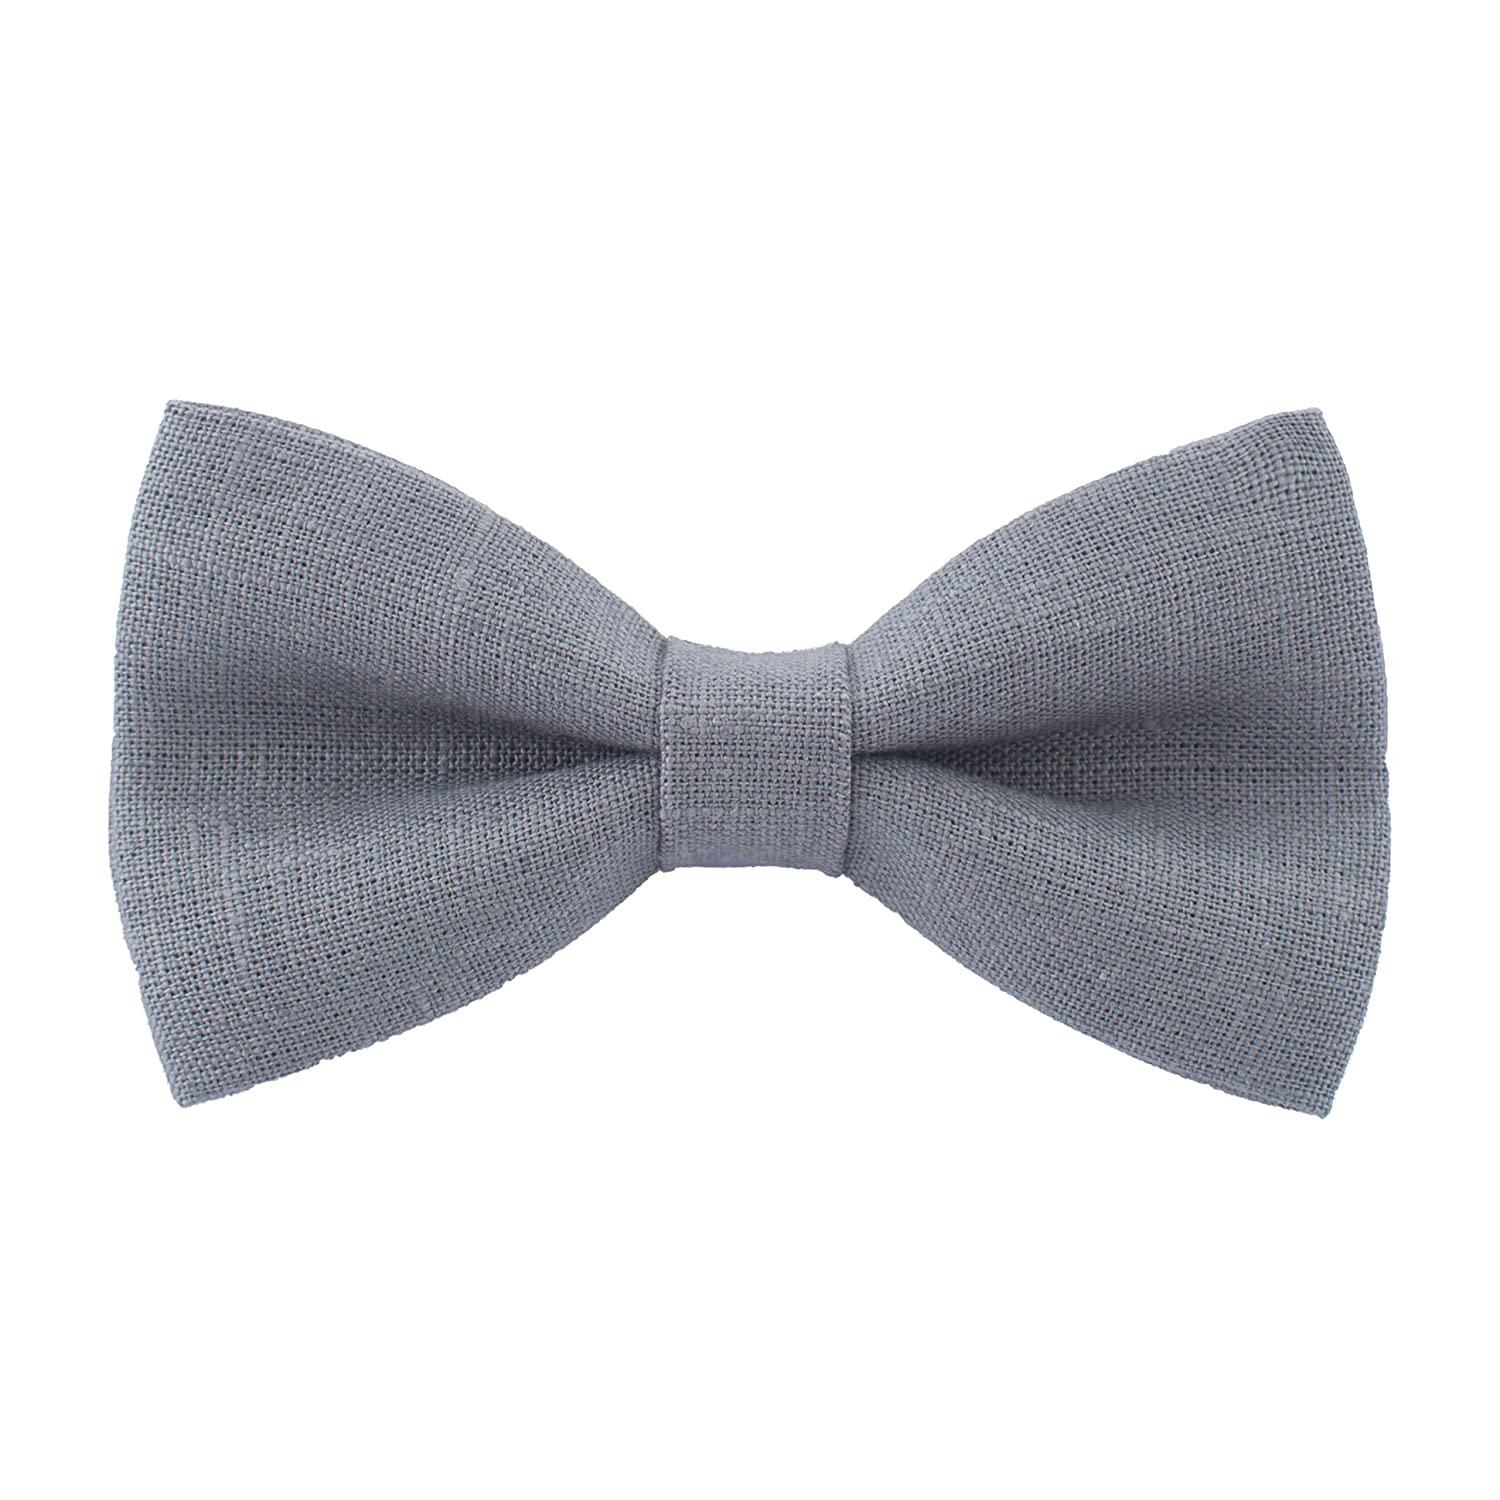 Linen Classic Pre-Tied Bow Tie Formal Solid Tuxedo, by Bow Tie House (Medium, Brown) 06578